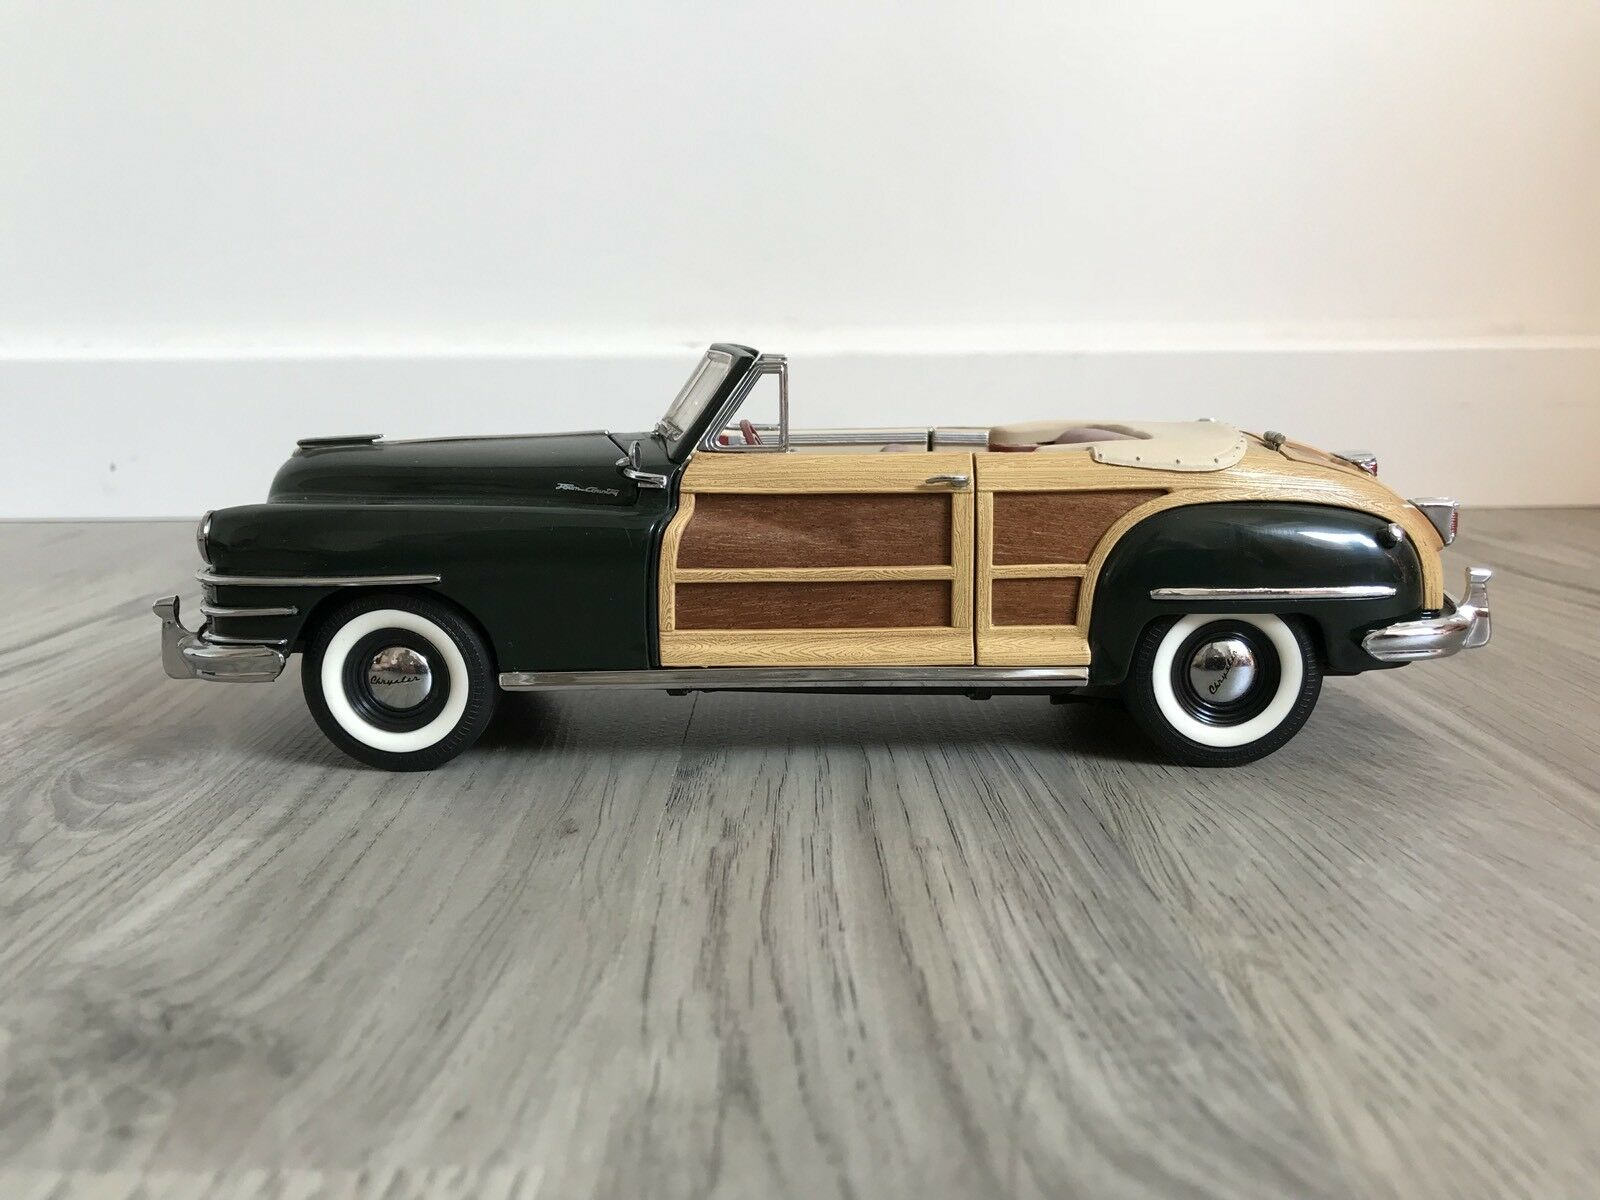 Fuxi double à acheter! Chrysler Town and and and Country 1948 1/24e Franklin Mint Précision | Authentique